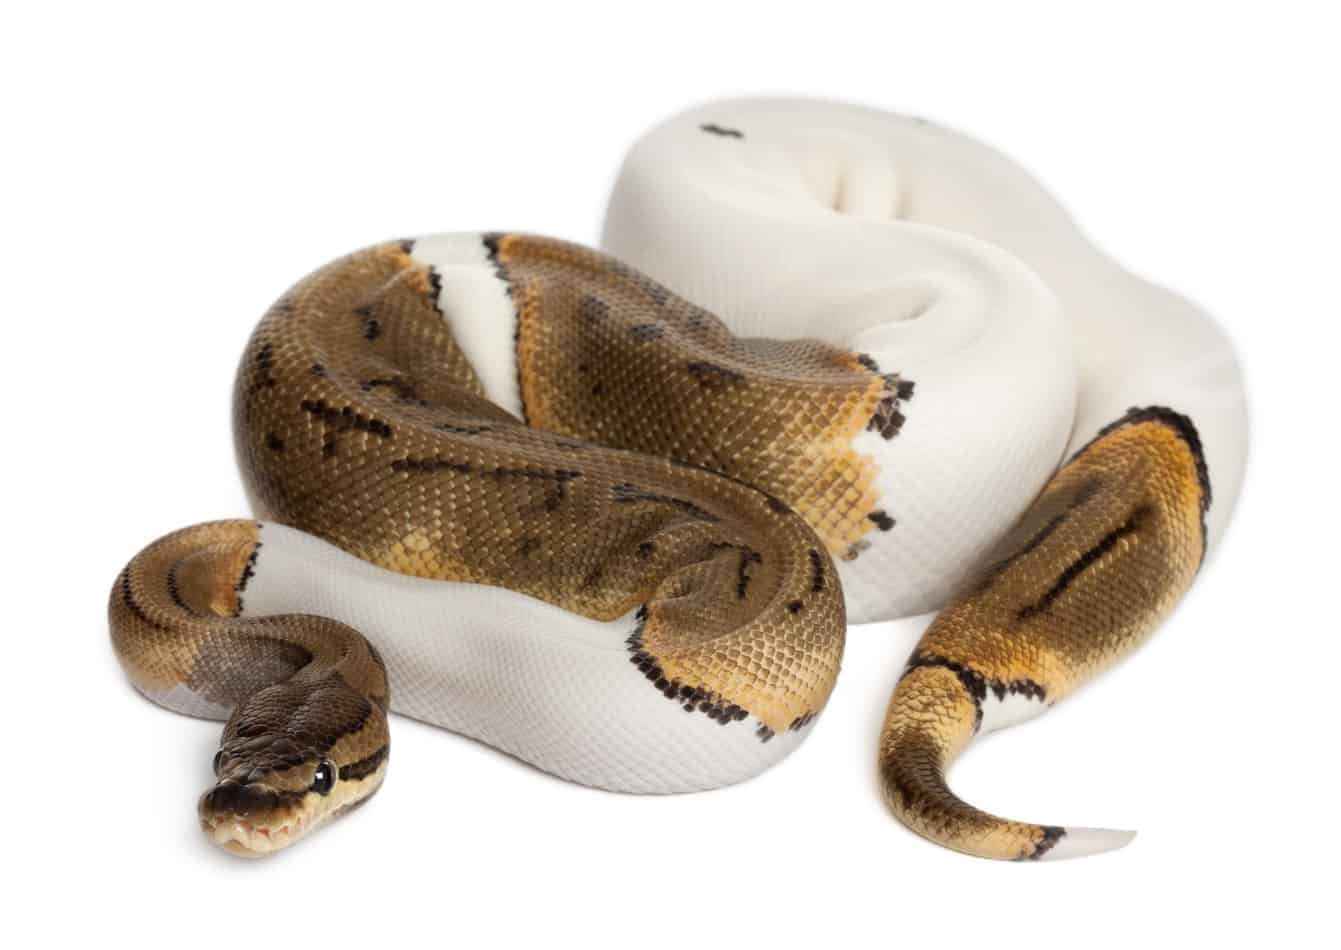 11 Cool Facts About Pied Ball Pythons